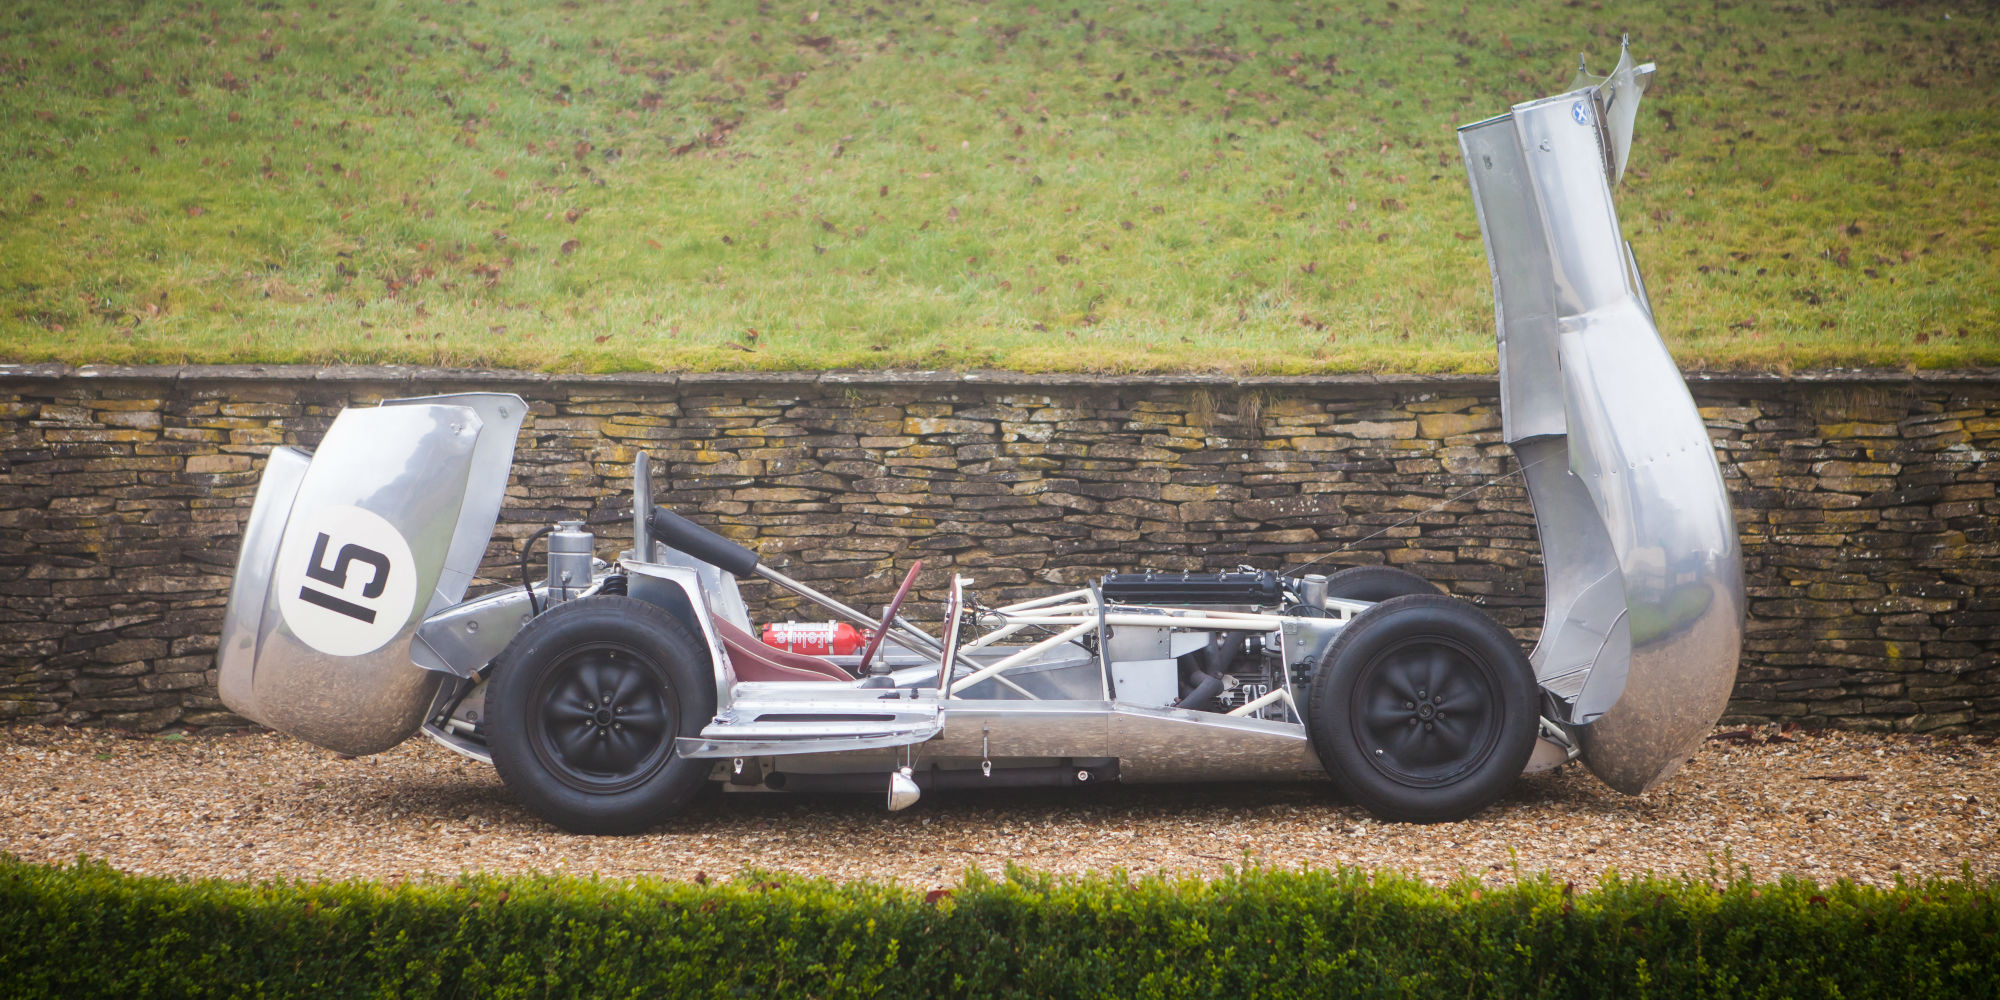 The Ex – Alan Stacey, Works 1959 Lotus 15